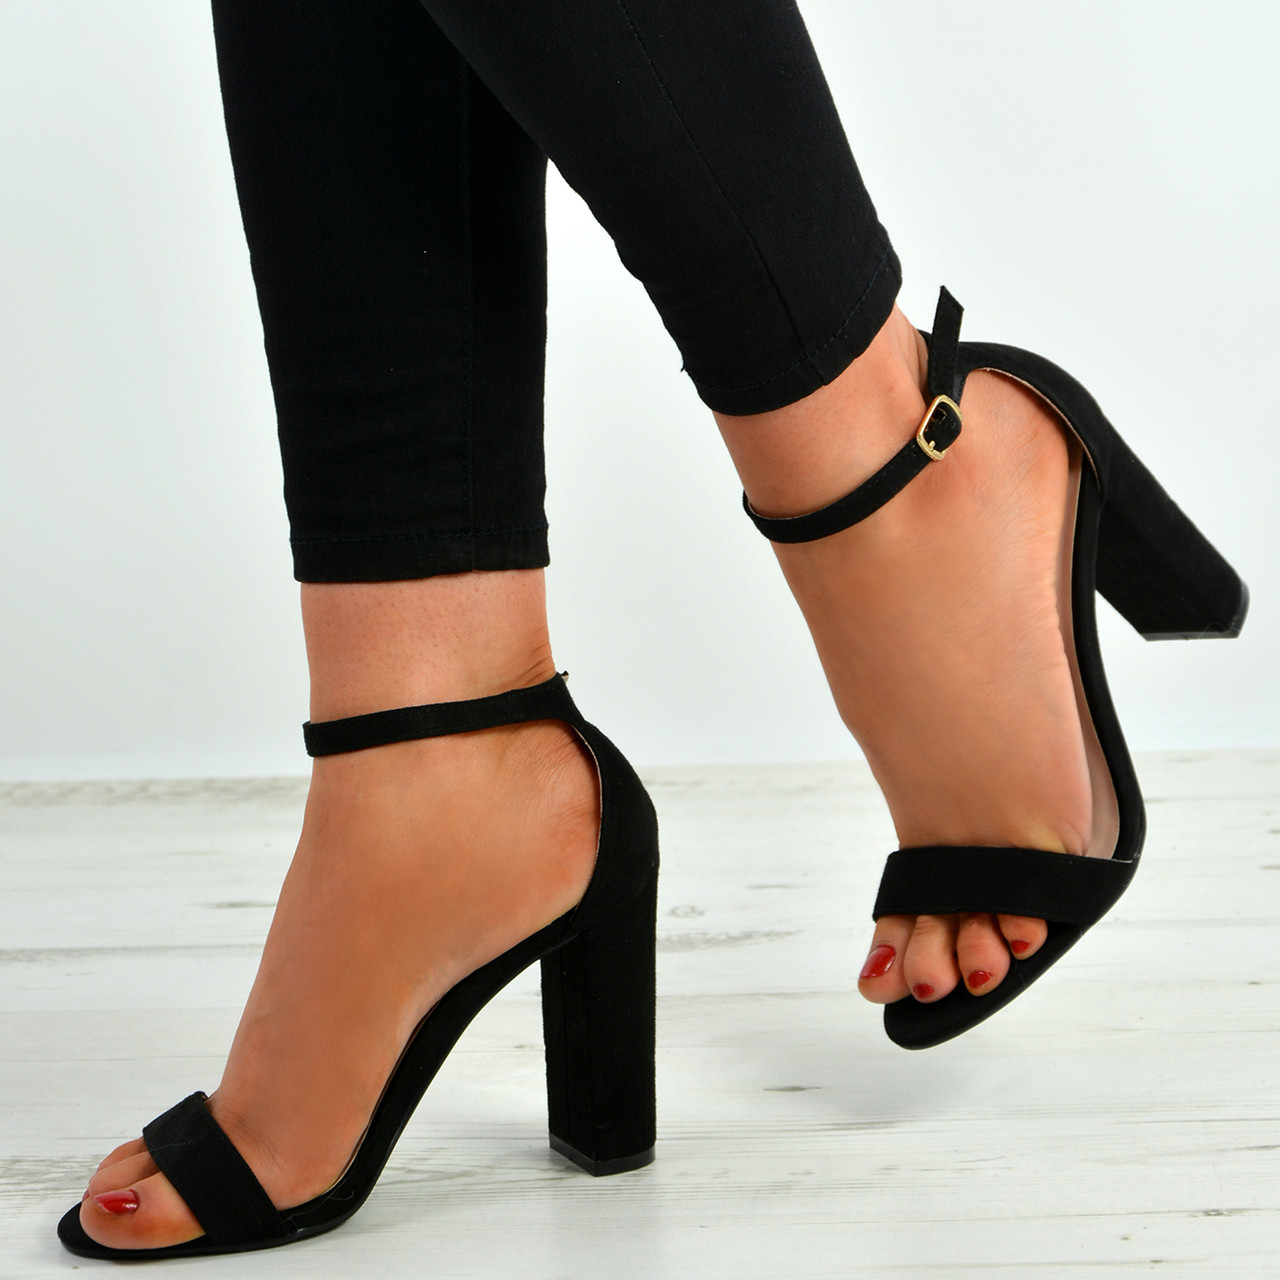 NEW LADIES TOE BLOCK HIGH HEELS PEEP TOE LADIES OPEN BACK PARTY ANKLE SANDALS Zapatos Talla a8ef88